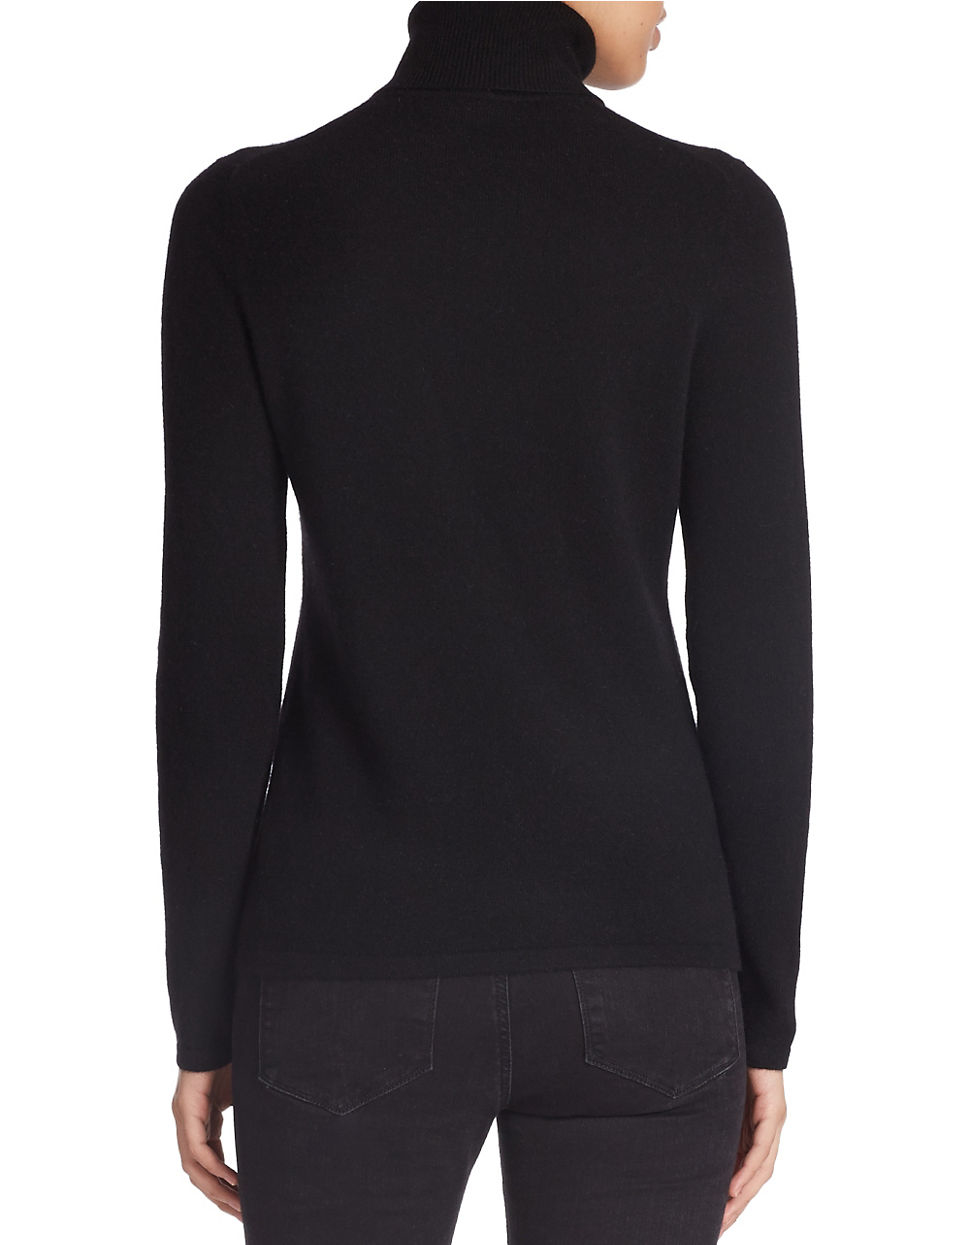 Lord Amp Taylor Cashmere Turtleneck Sweater In Black Lyst